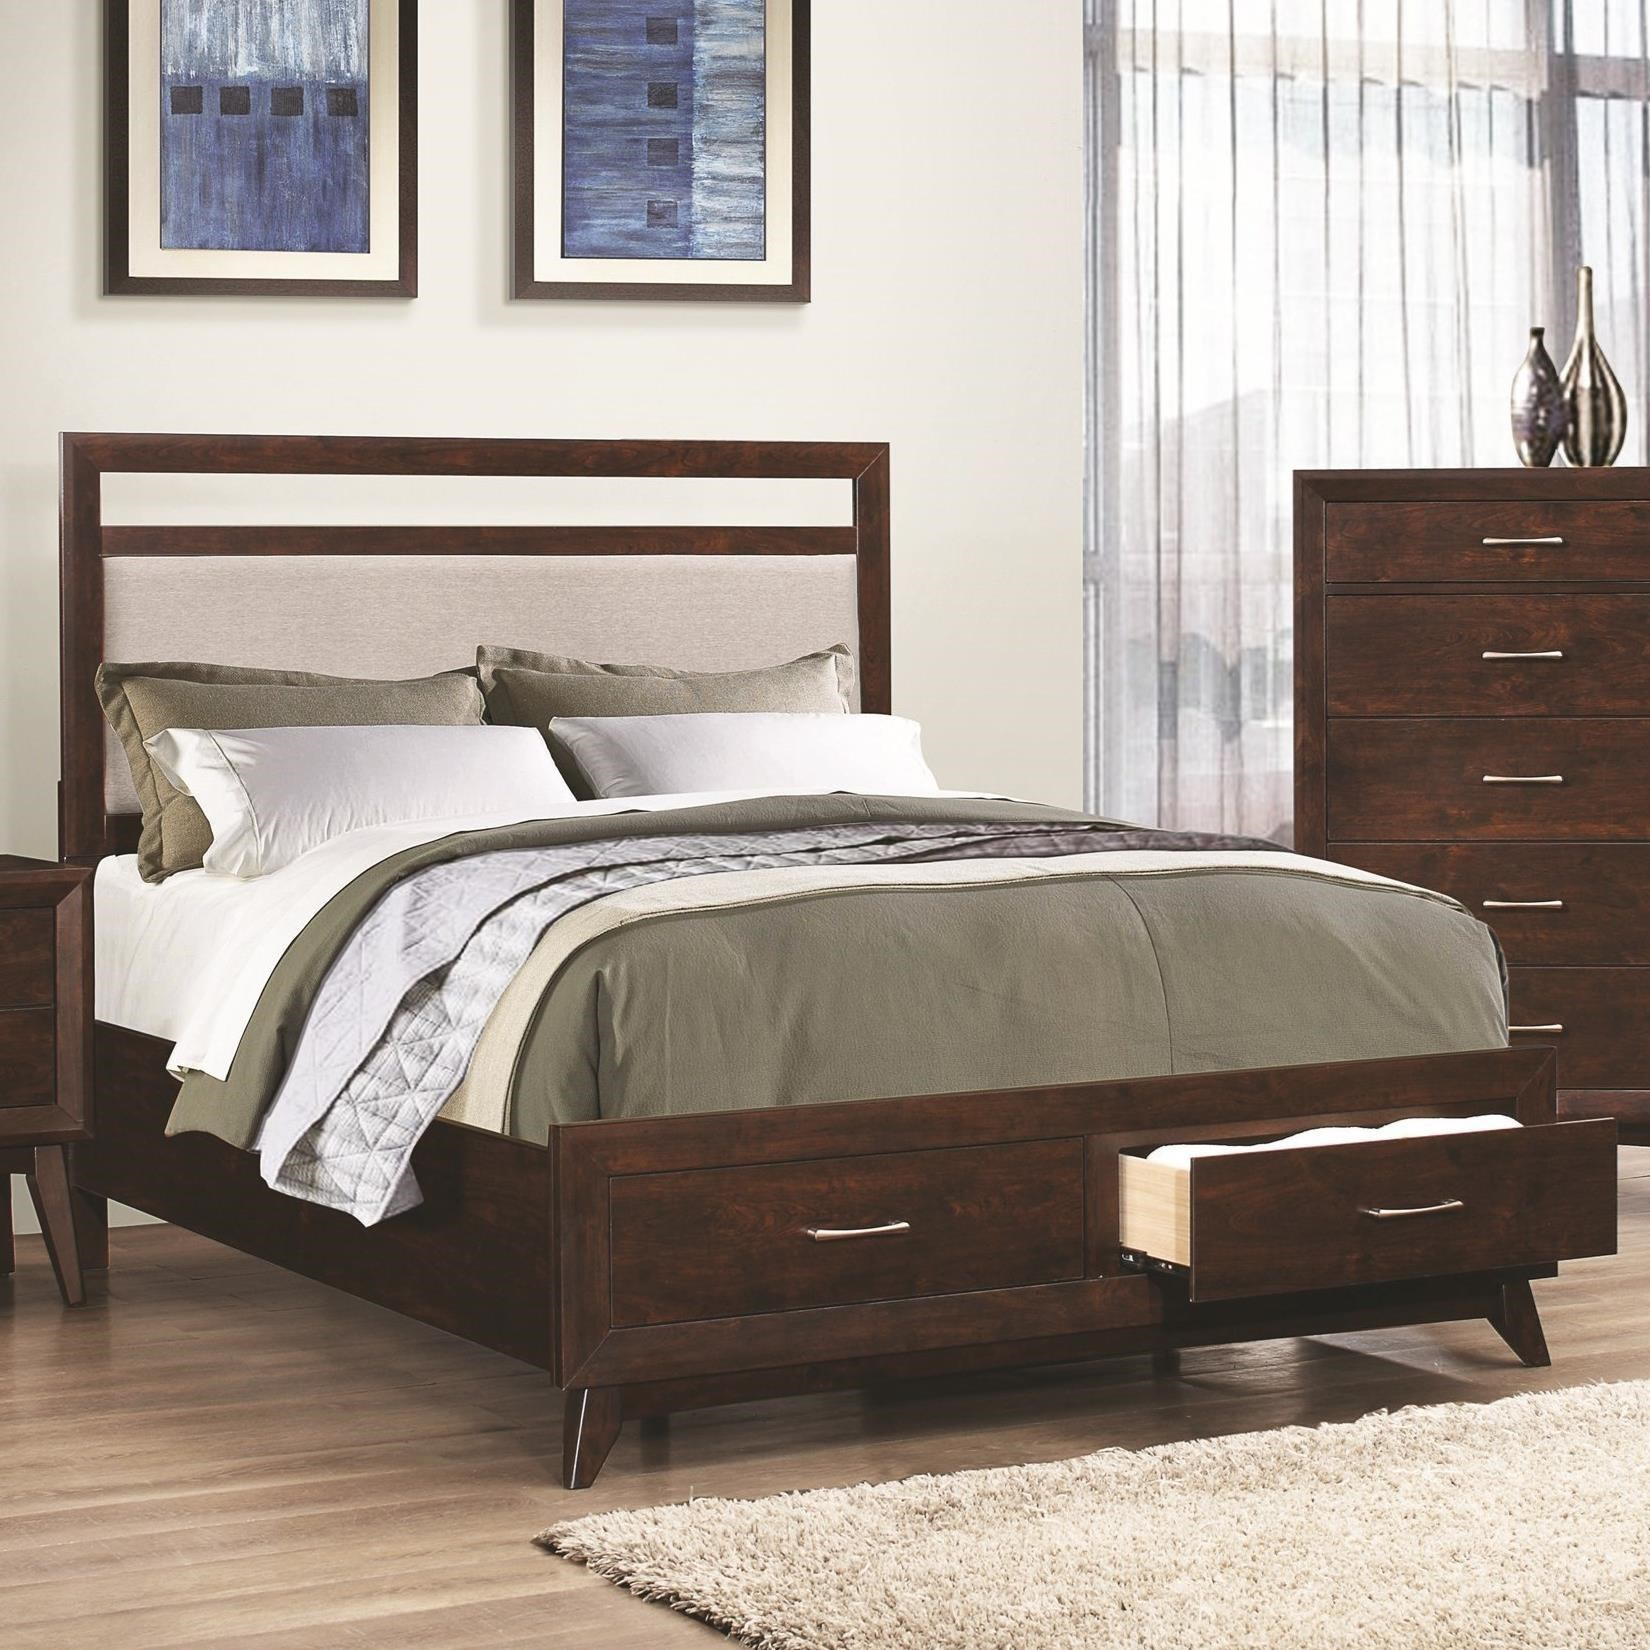 Coaster Carrington California King Storage Bed - Item Number: 205041KW